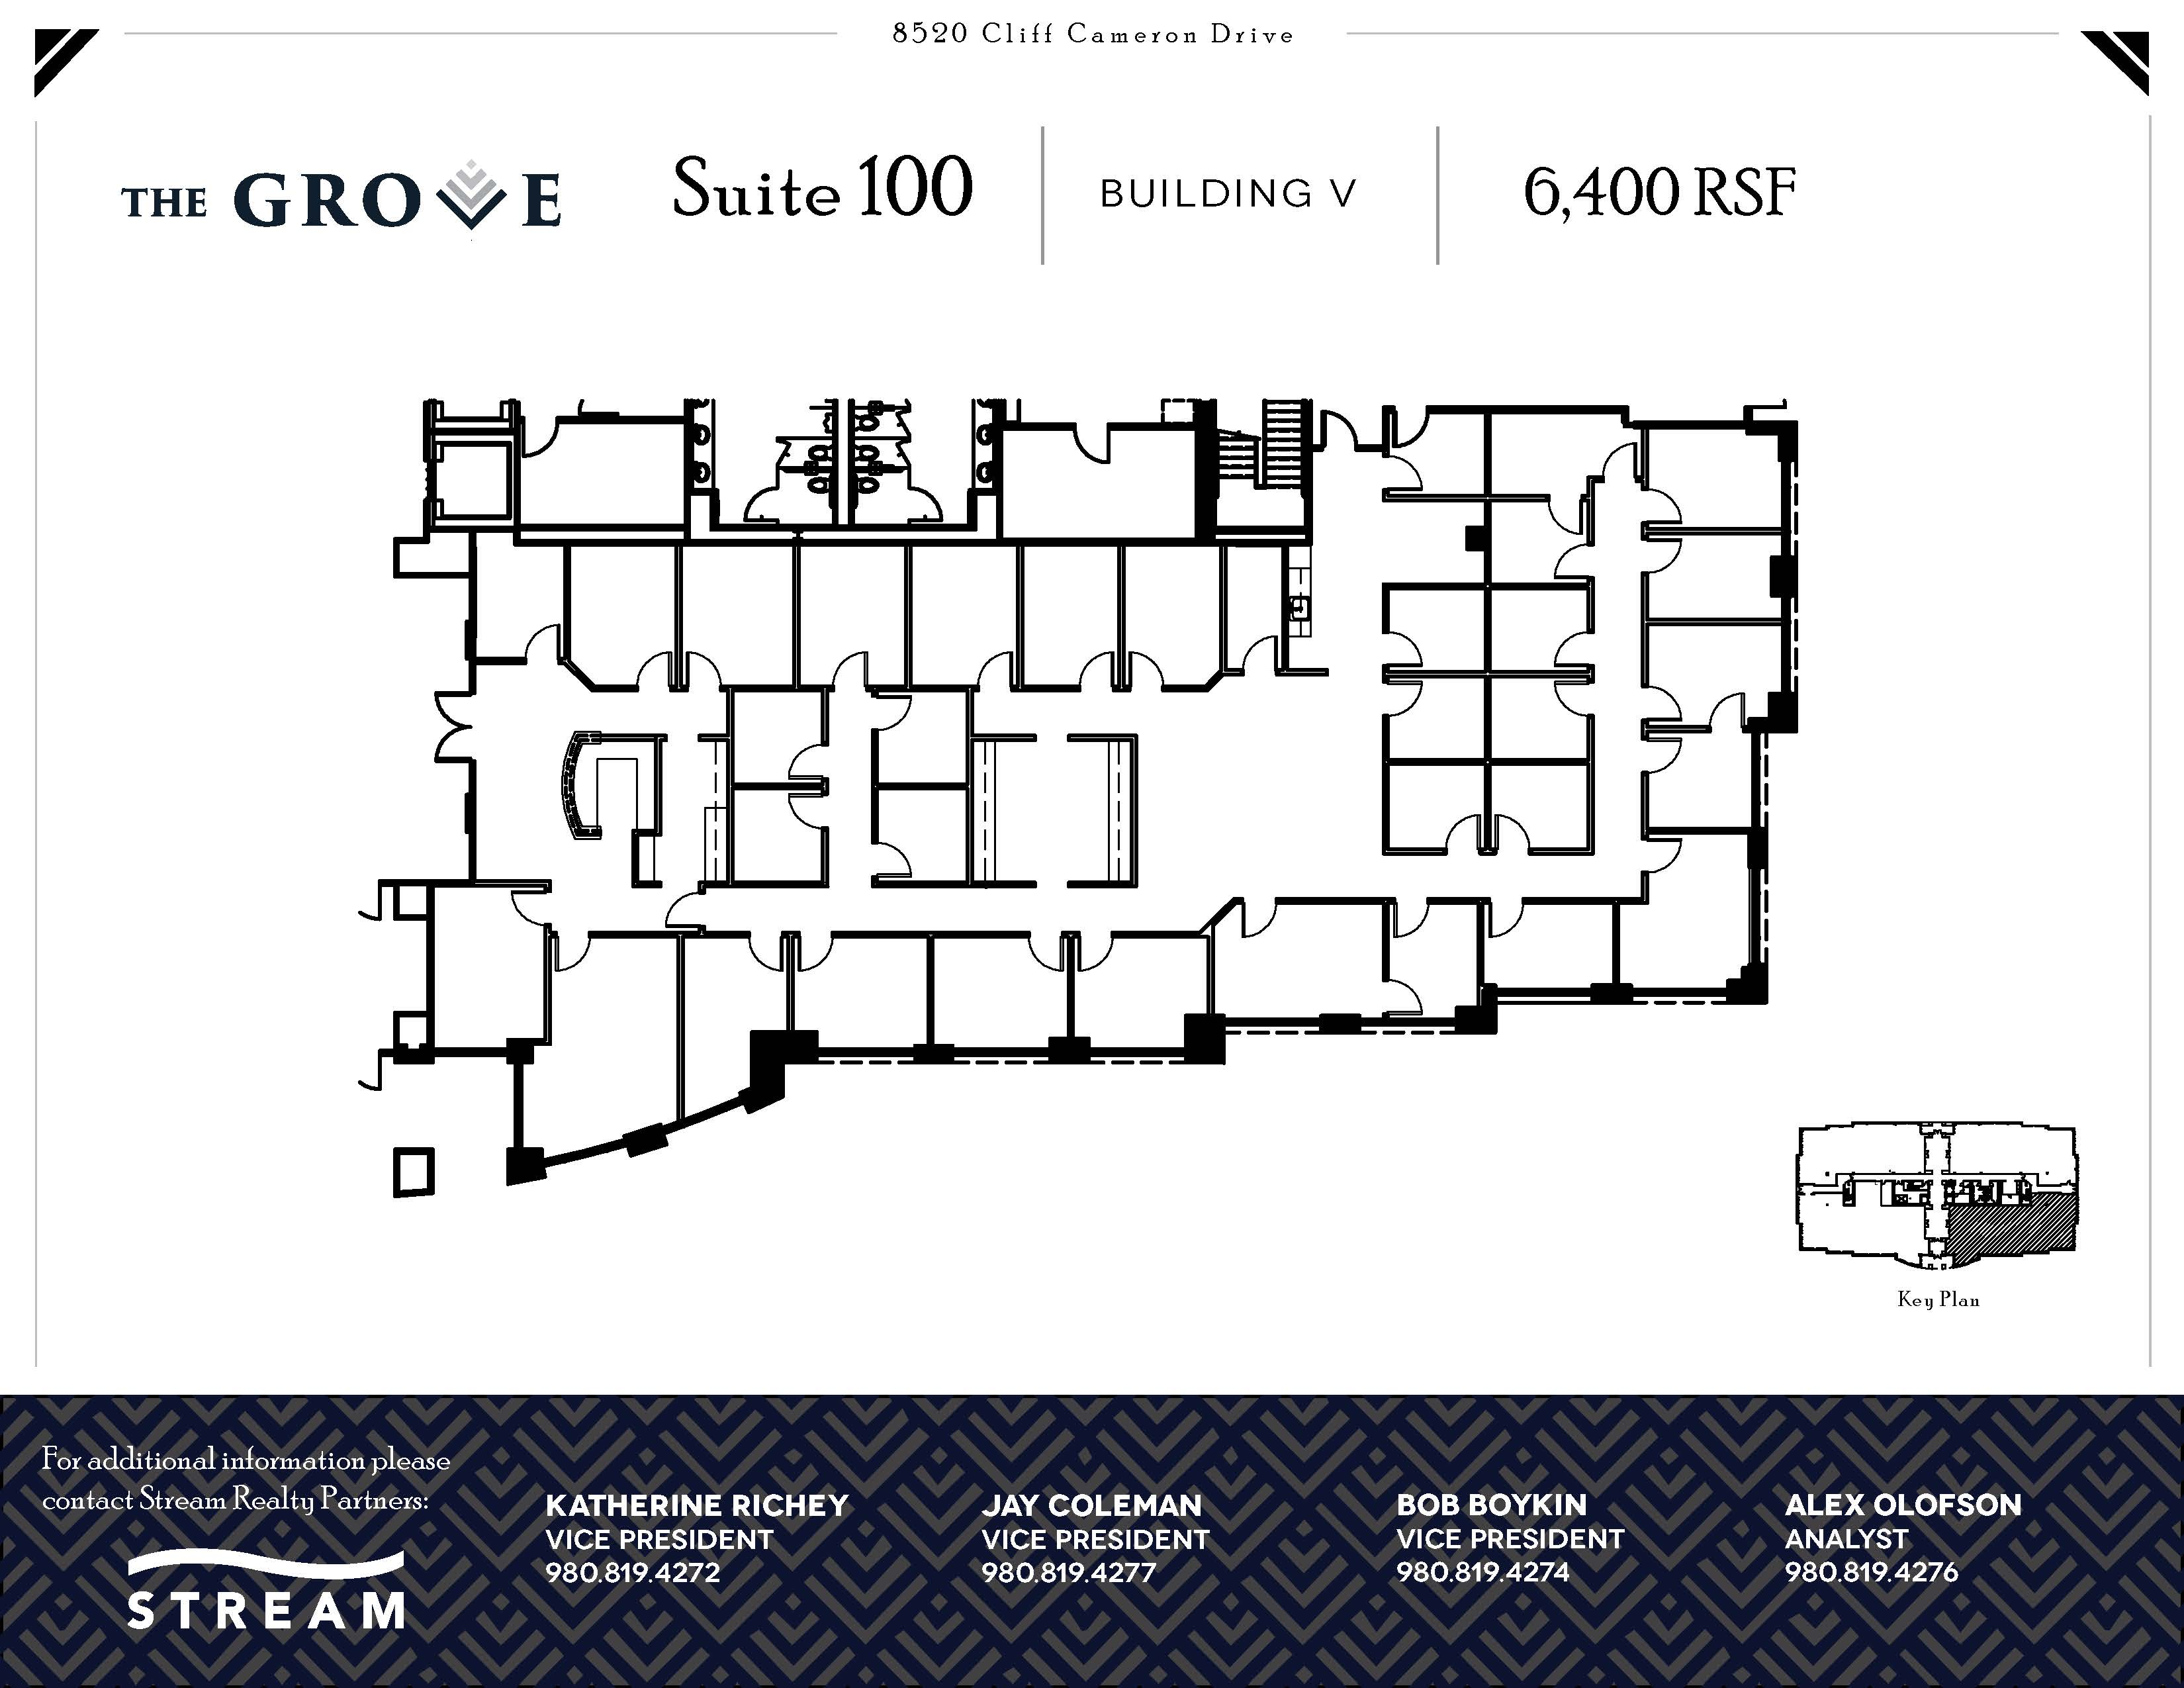 The Grove V [8520] -- Suite 100-- 6,400 RSF